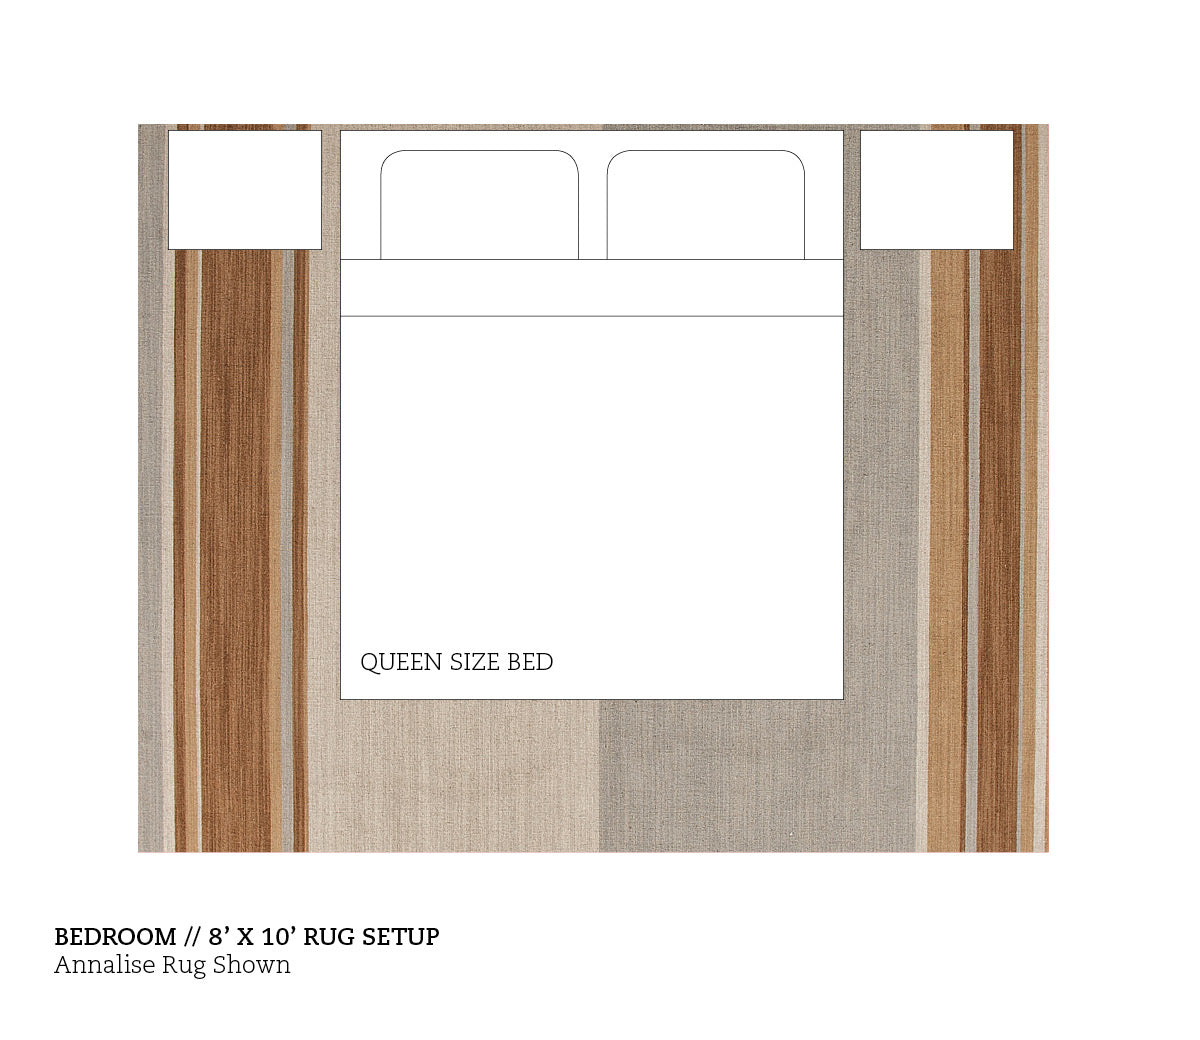 Size Matters Our Rug Size Guide Burkelman